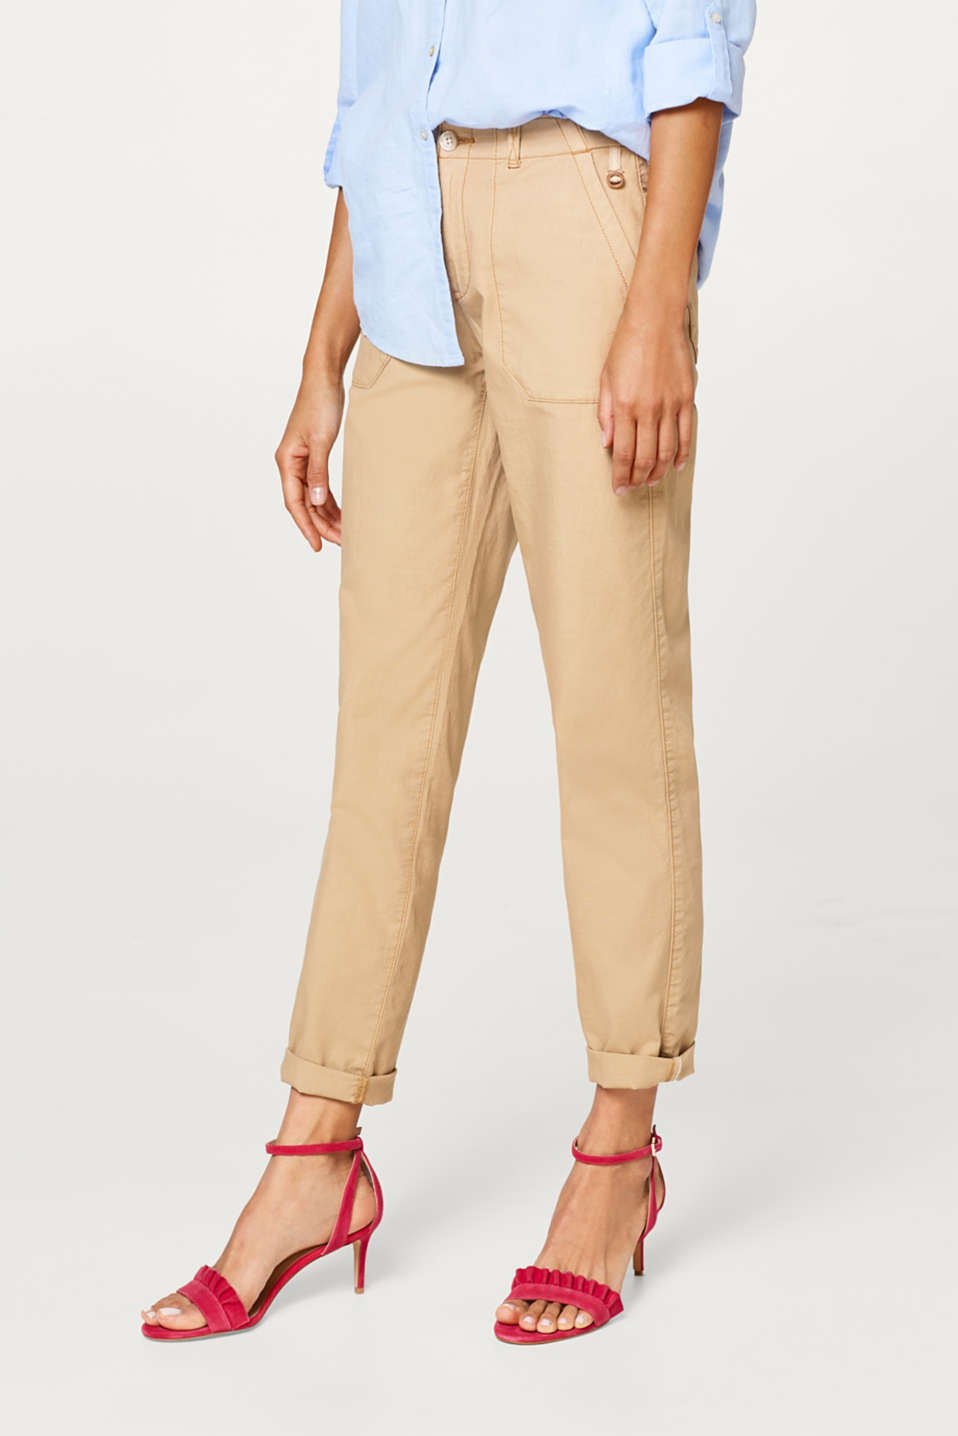 edc - Chinos with patch pockets, 100% cotton